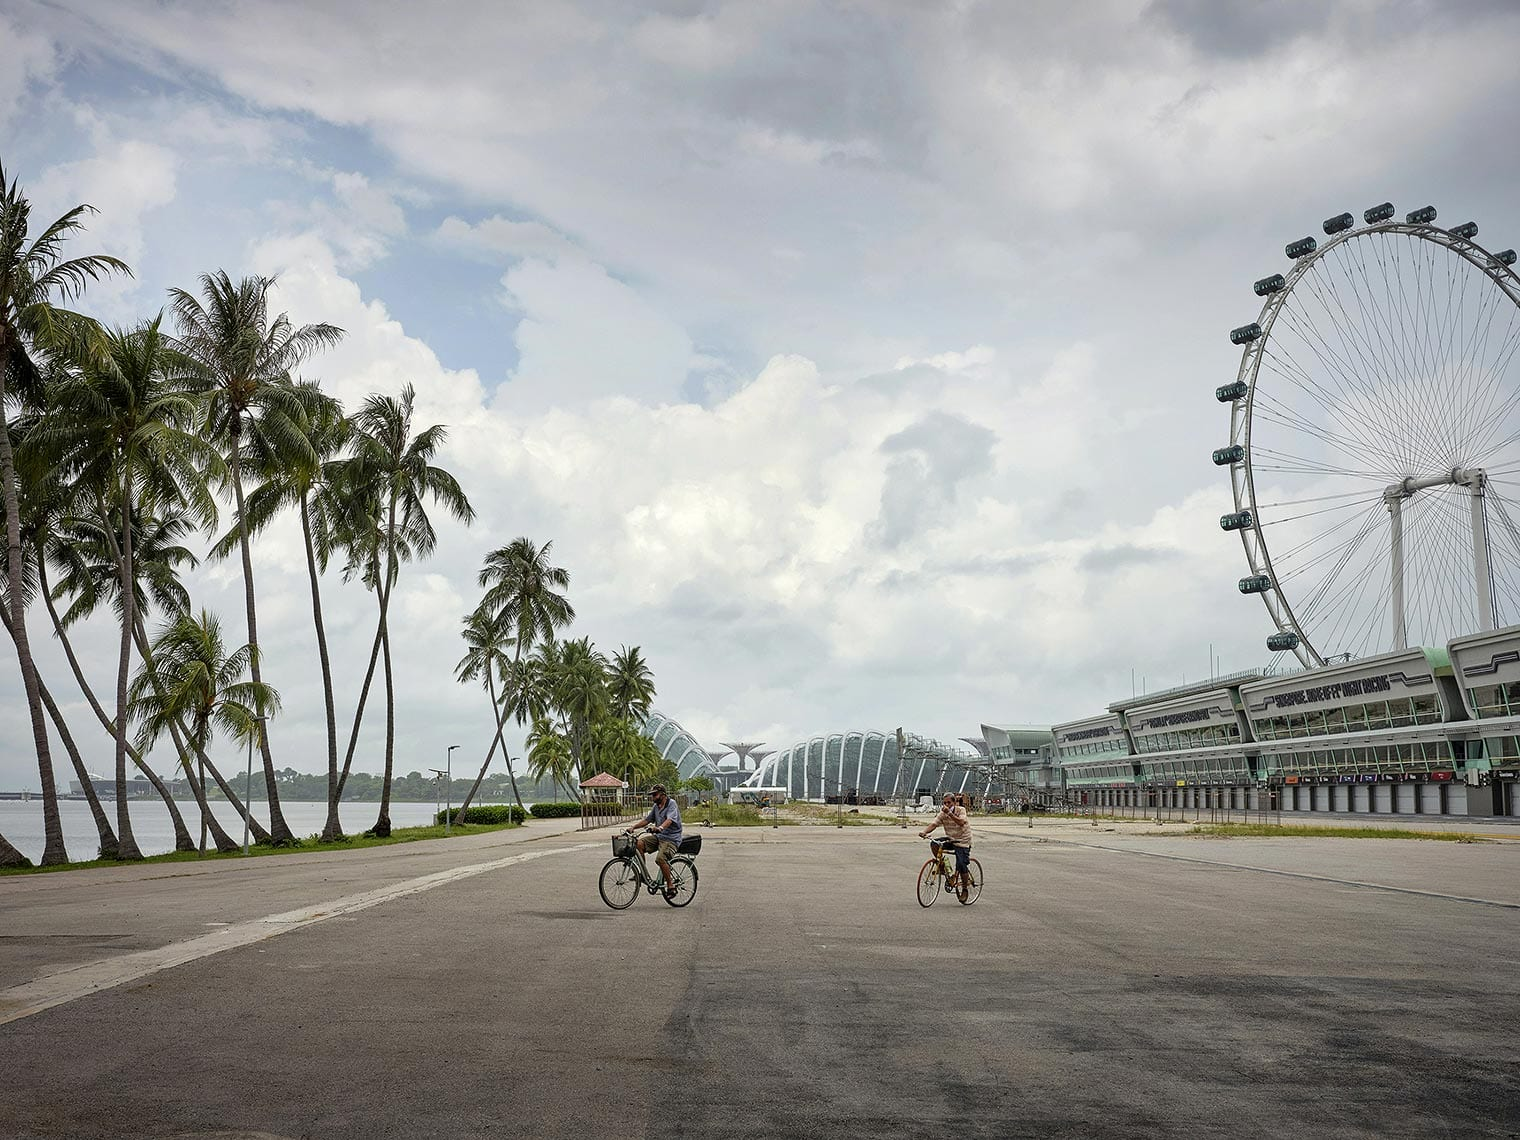 Two cyclists on an empty road surrounded by palm trees and a ferris wheel